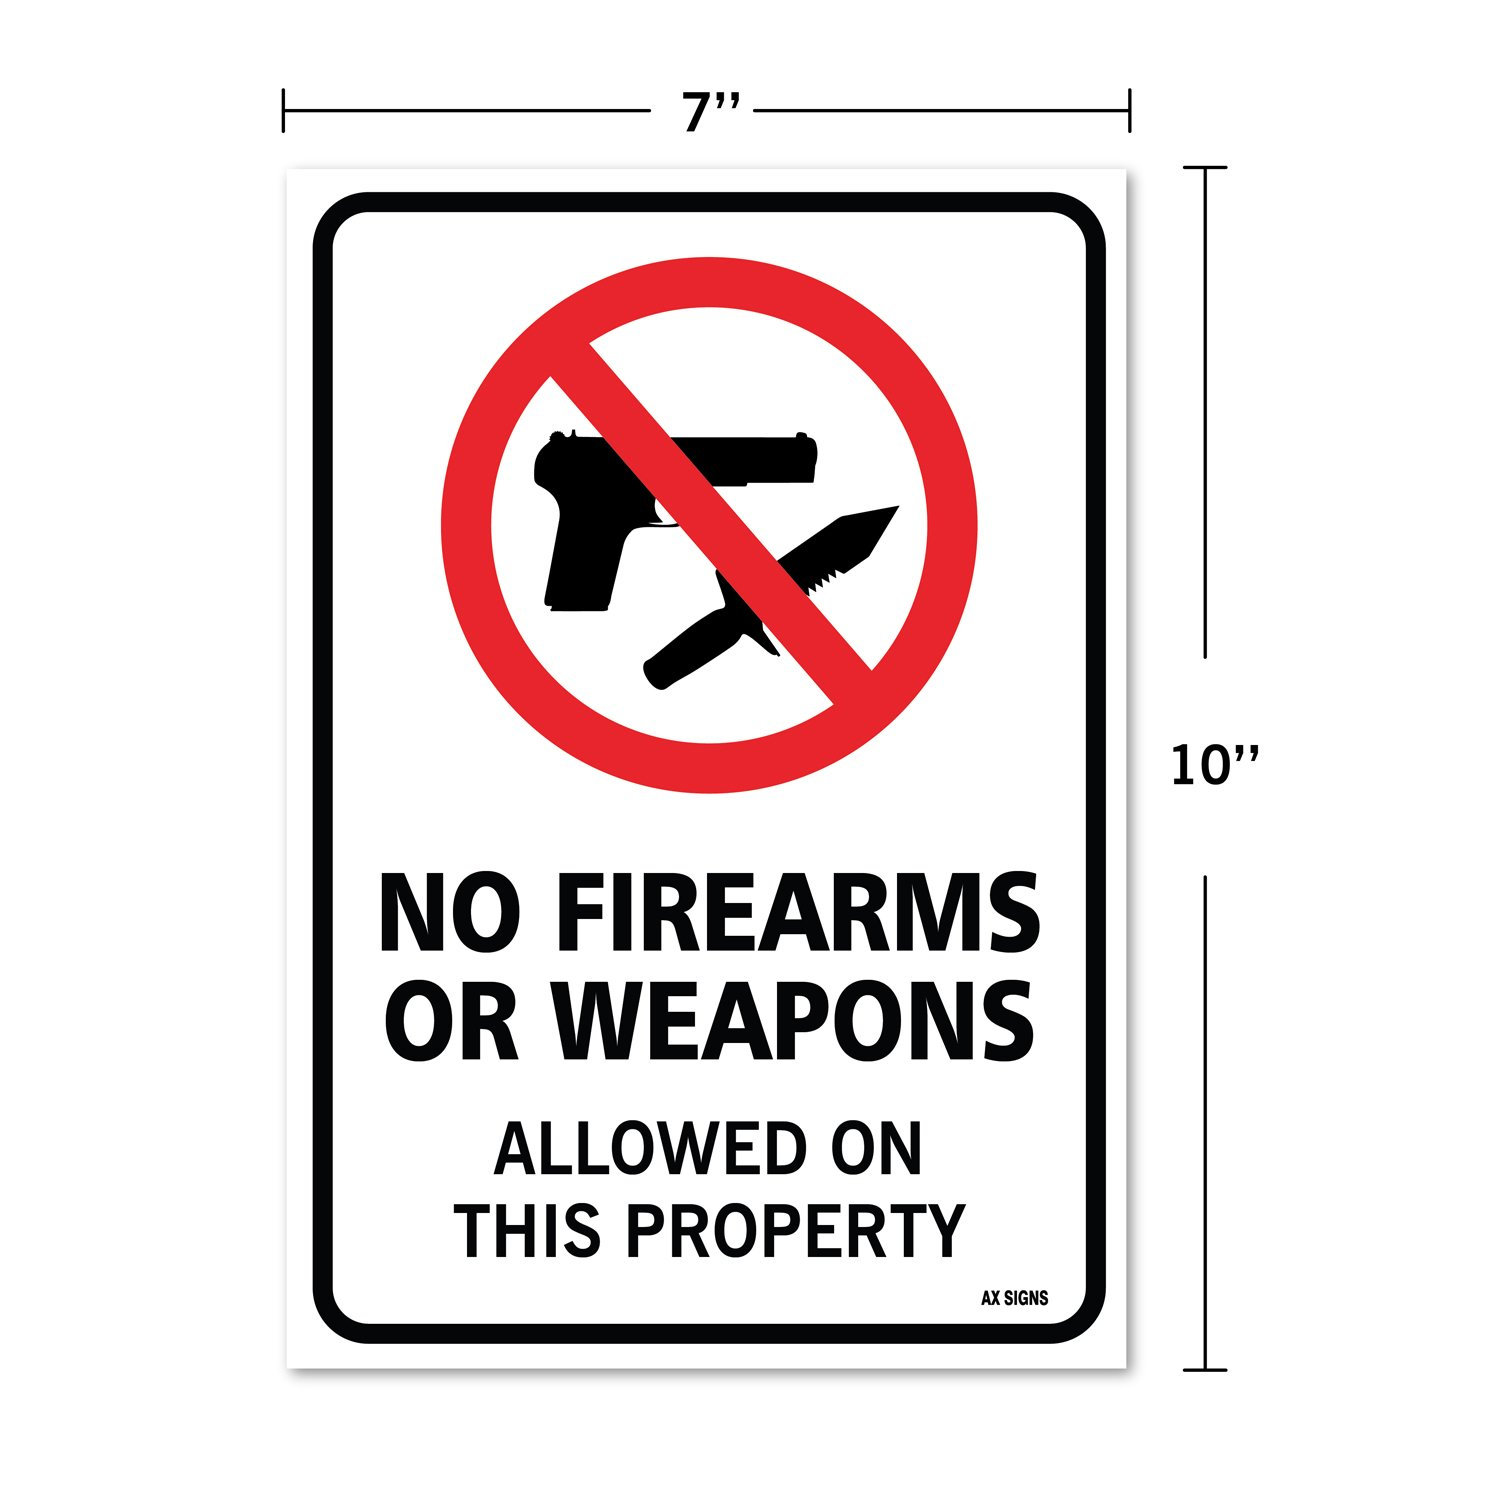 Amazon.com: No armas pistolas o armas Allowed signo, gran ...